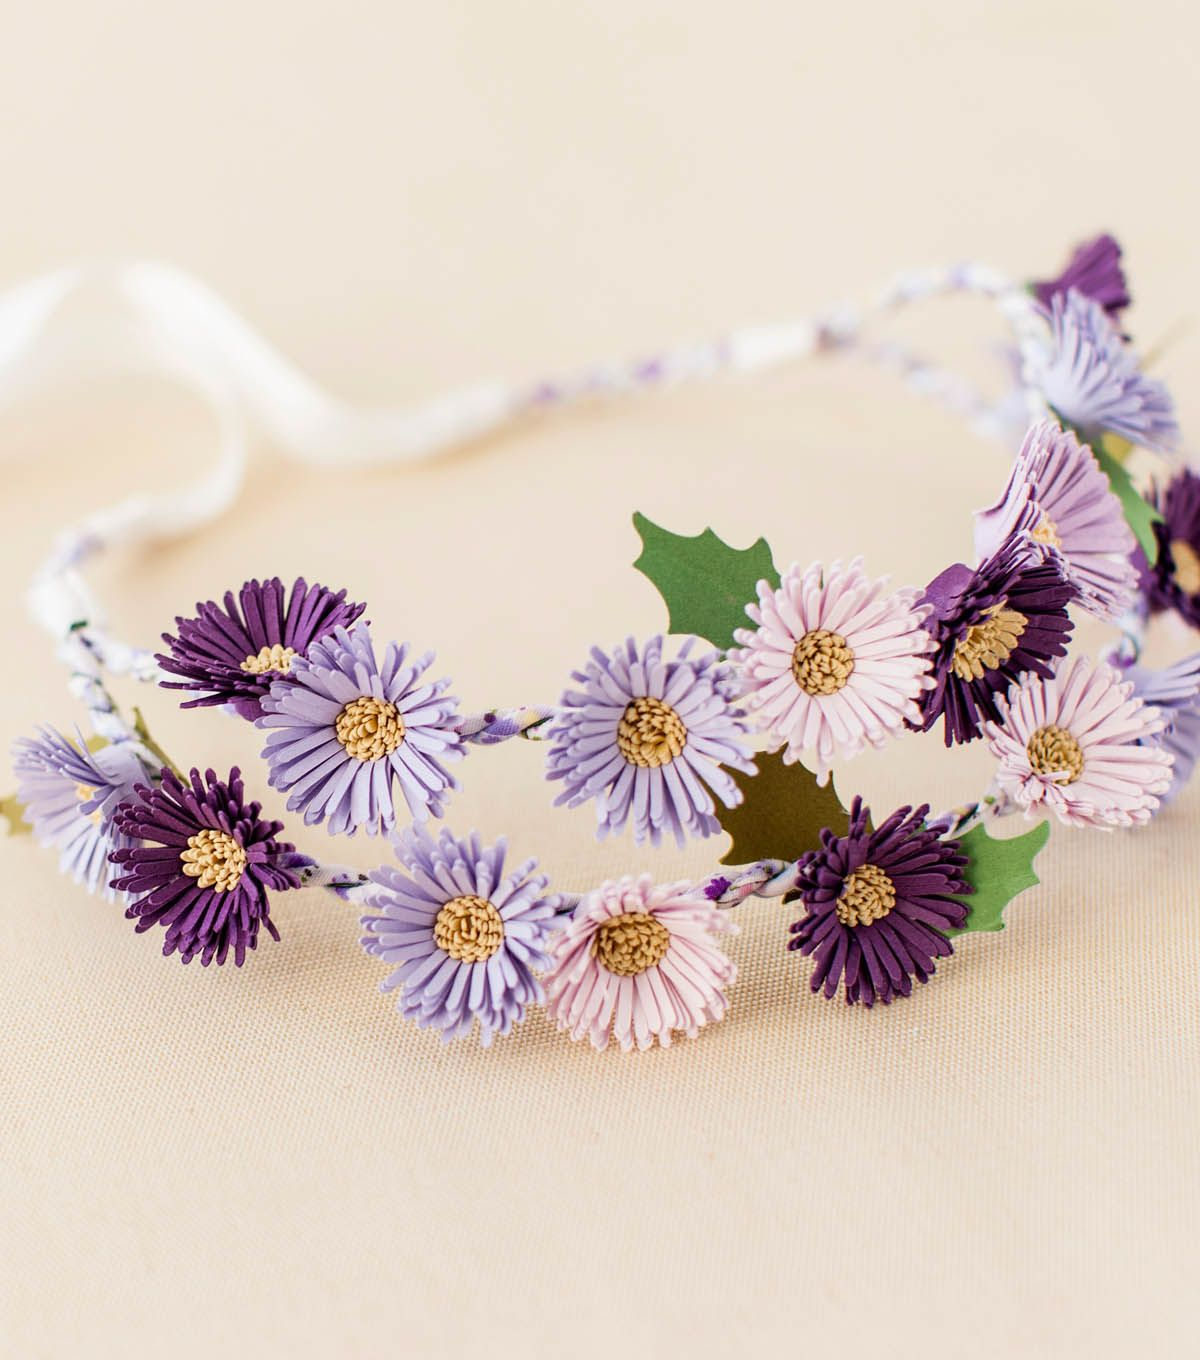 How to make a purple aster flower crown a free cricut project how to make a purple aster flower crown a free cricut project izmirmasajfo